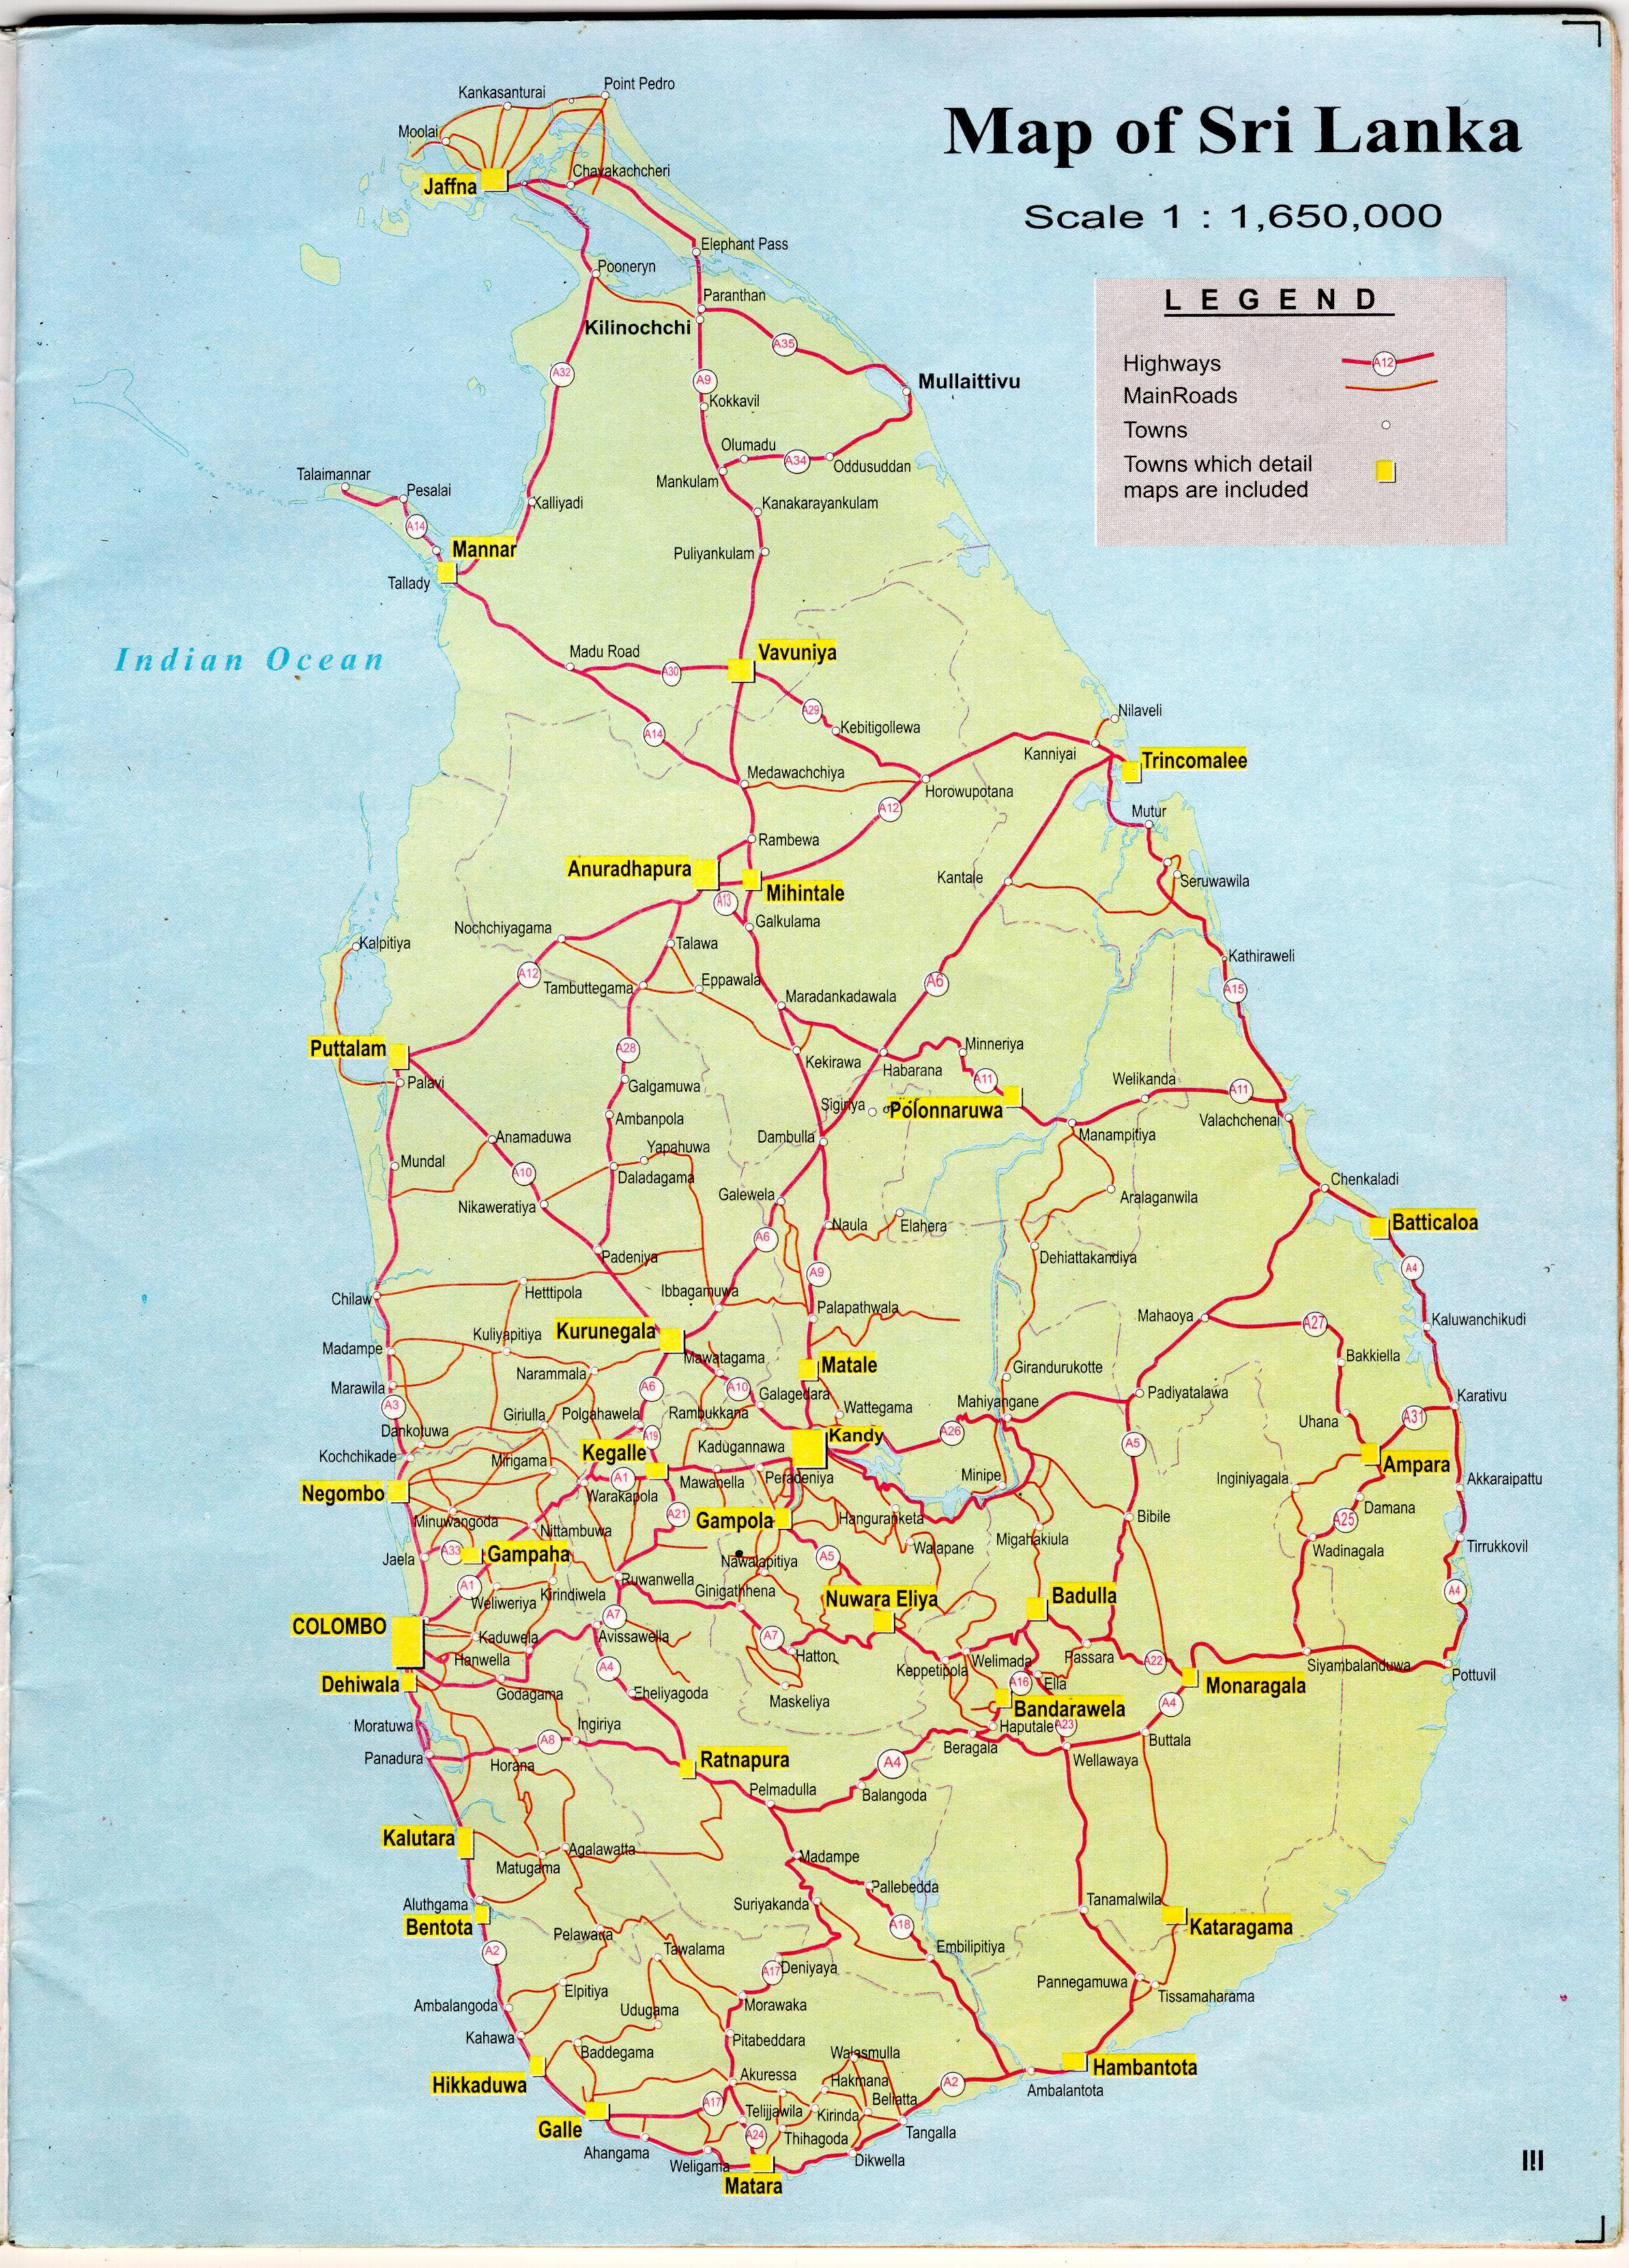 Sri Lanka Maps | Printable Maps of Sri Lanka for Download